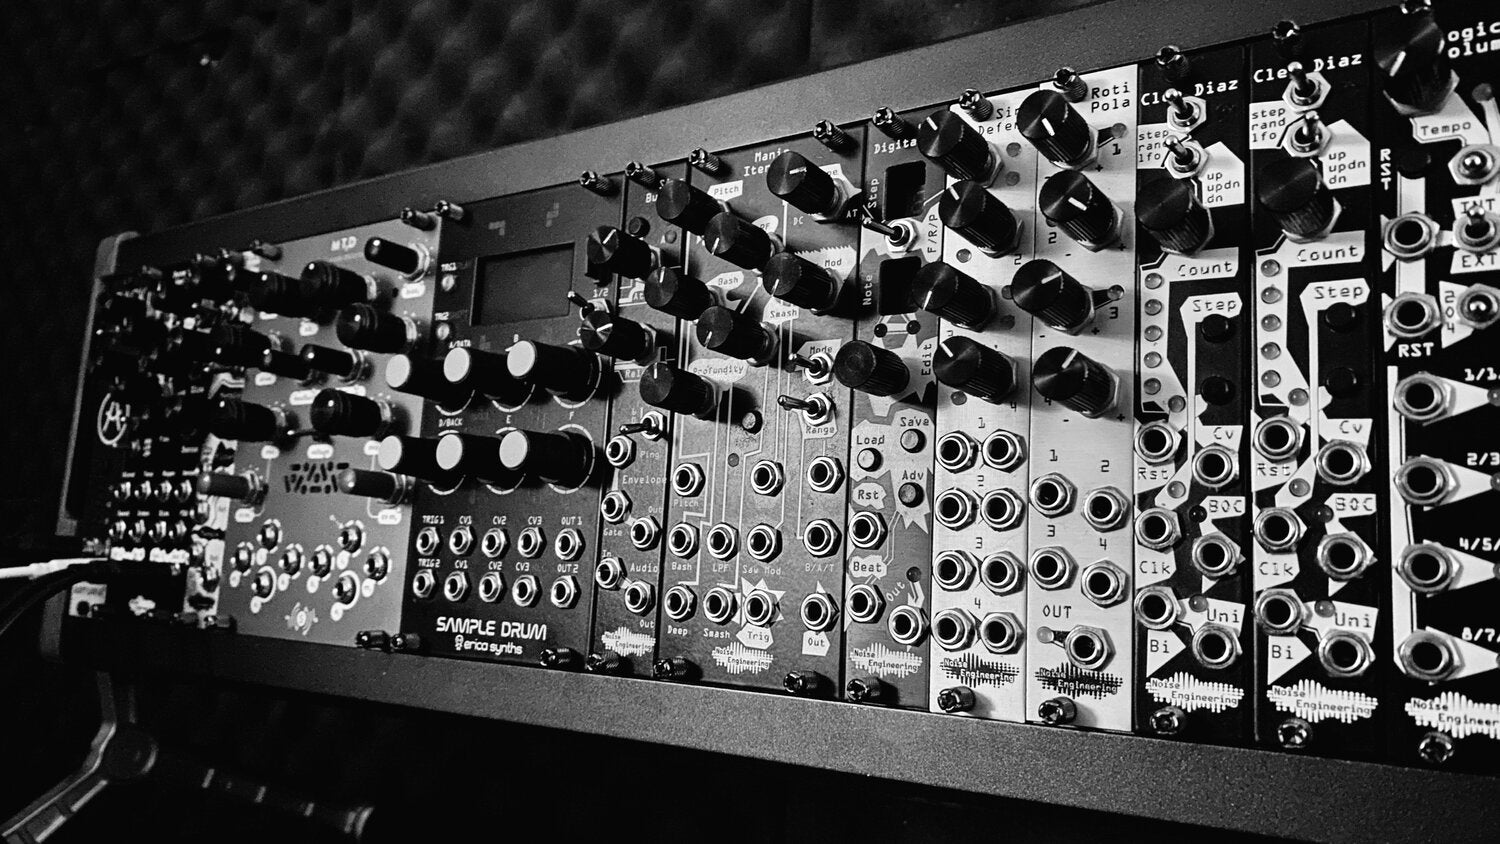 Black and white image showing a modular case featuring Noise Engineering modules